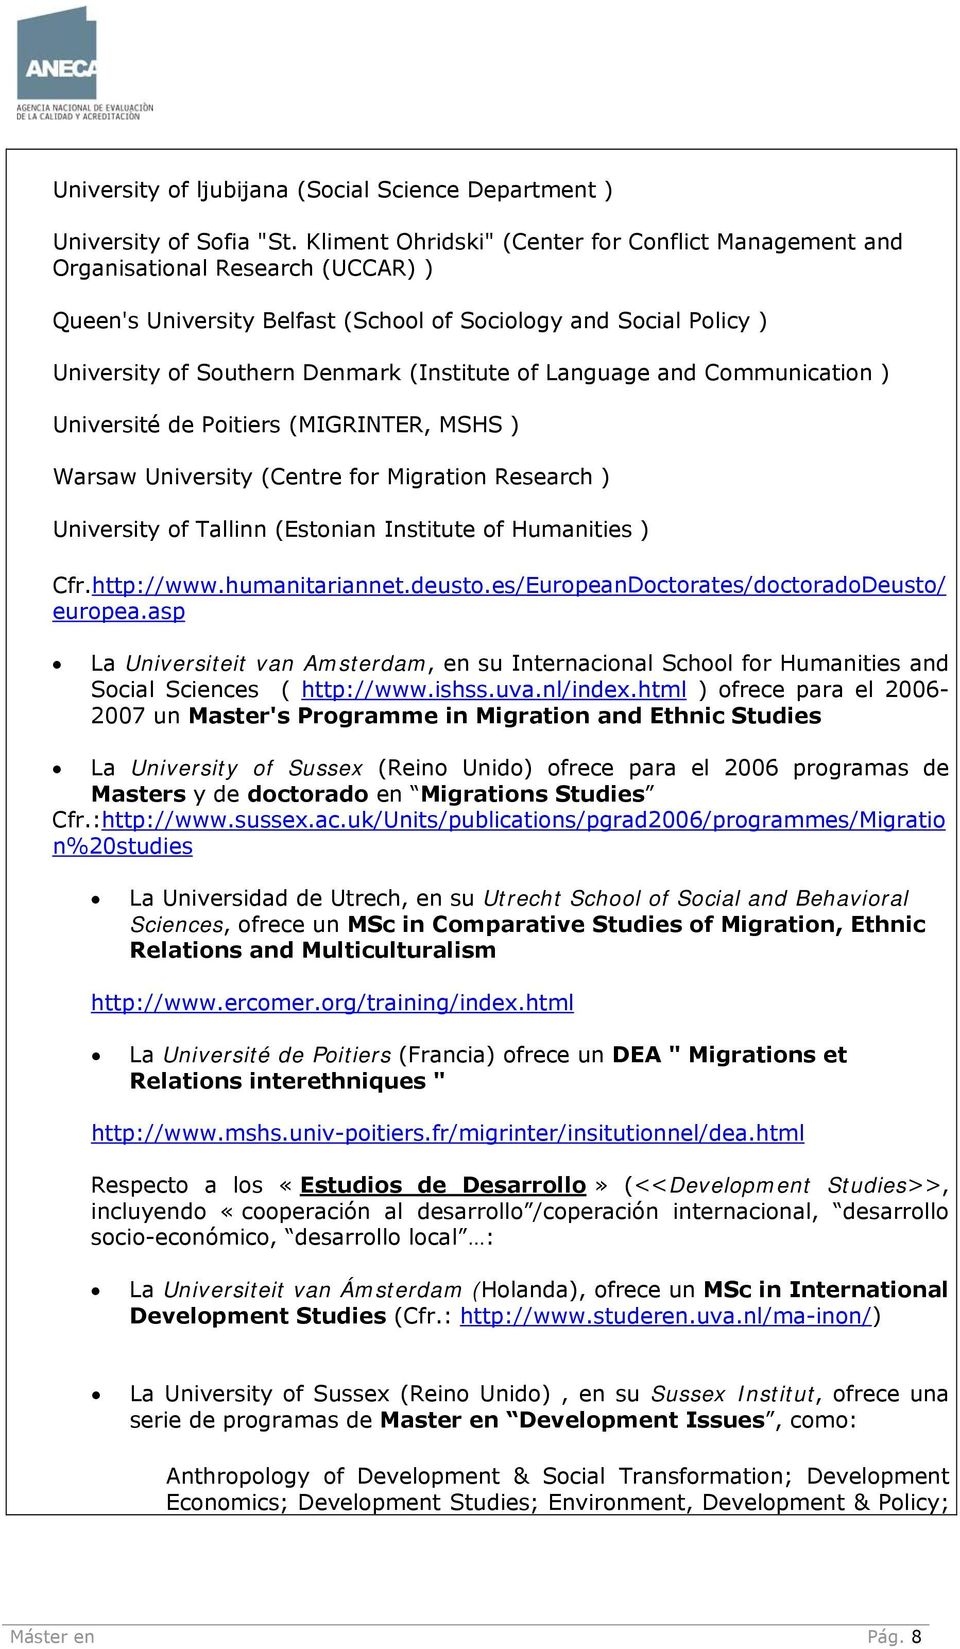 of Language and Communication ) Université de Poitiers (MIGRINTER, MSHS ) Warsaw University (Centre for Migration Research ) University of Tallinn (Estonian Institute of Humanities ) Cfr.http://www.